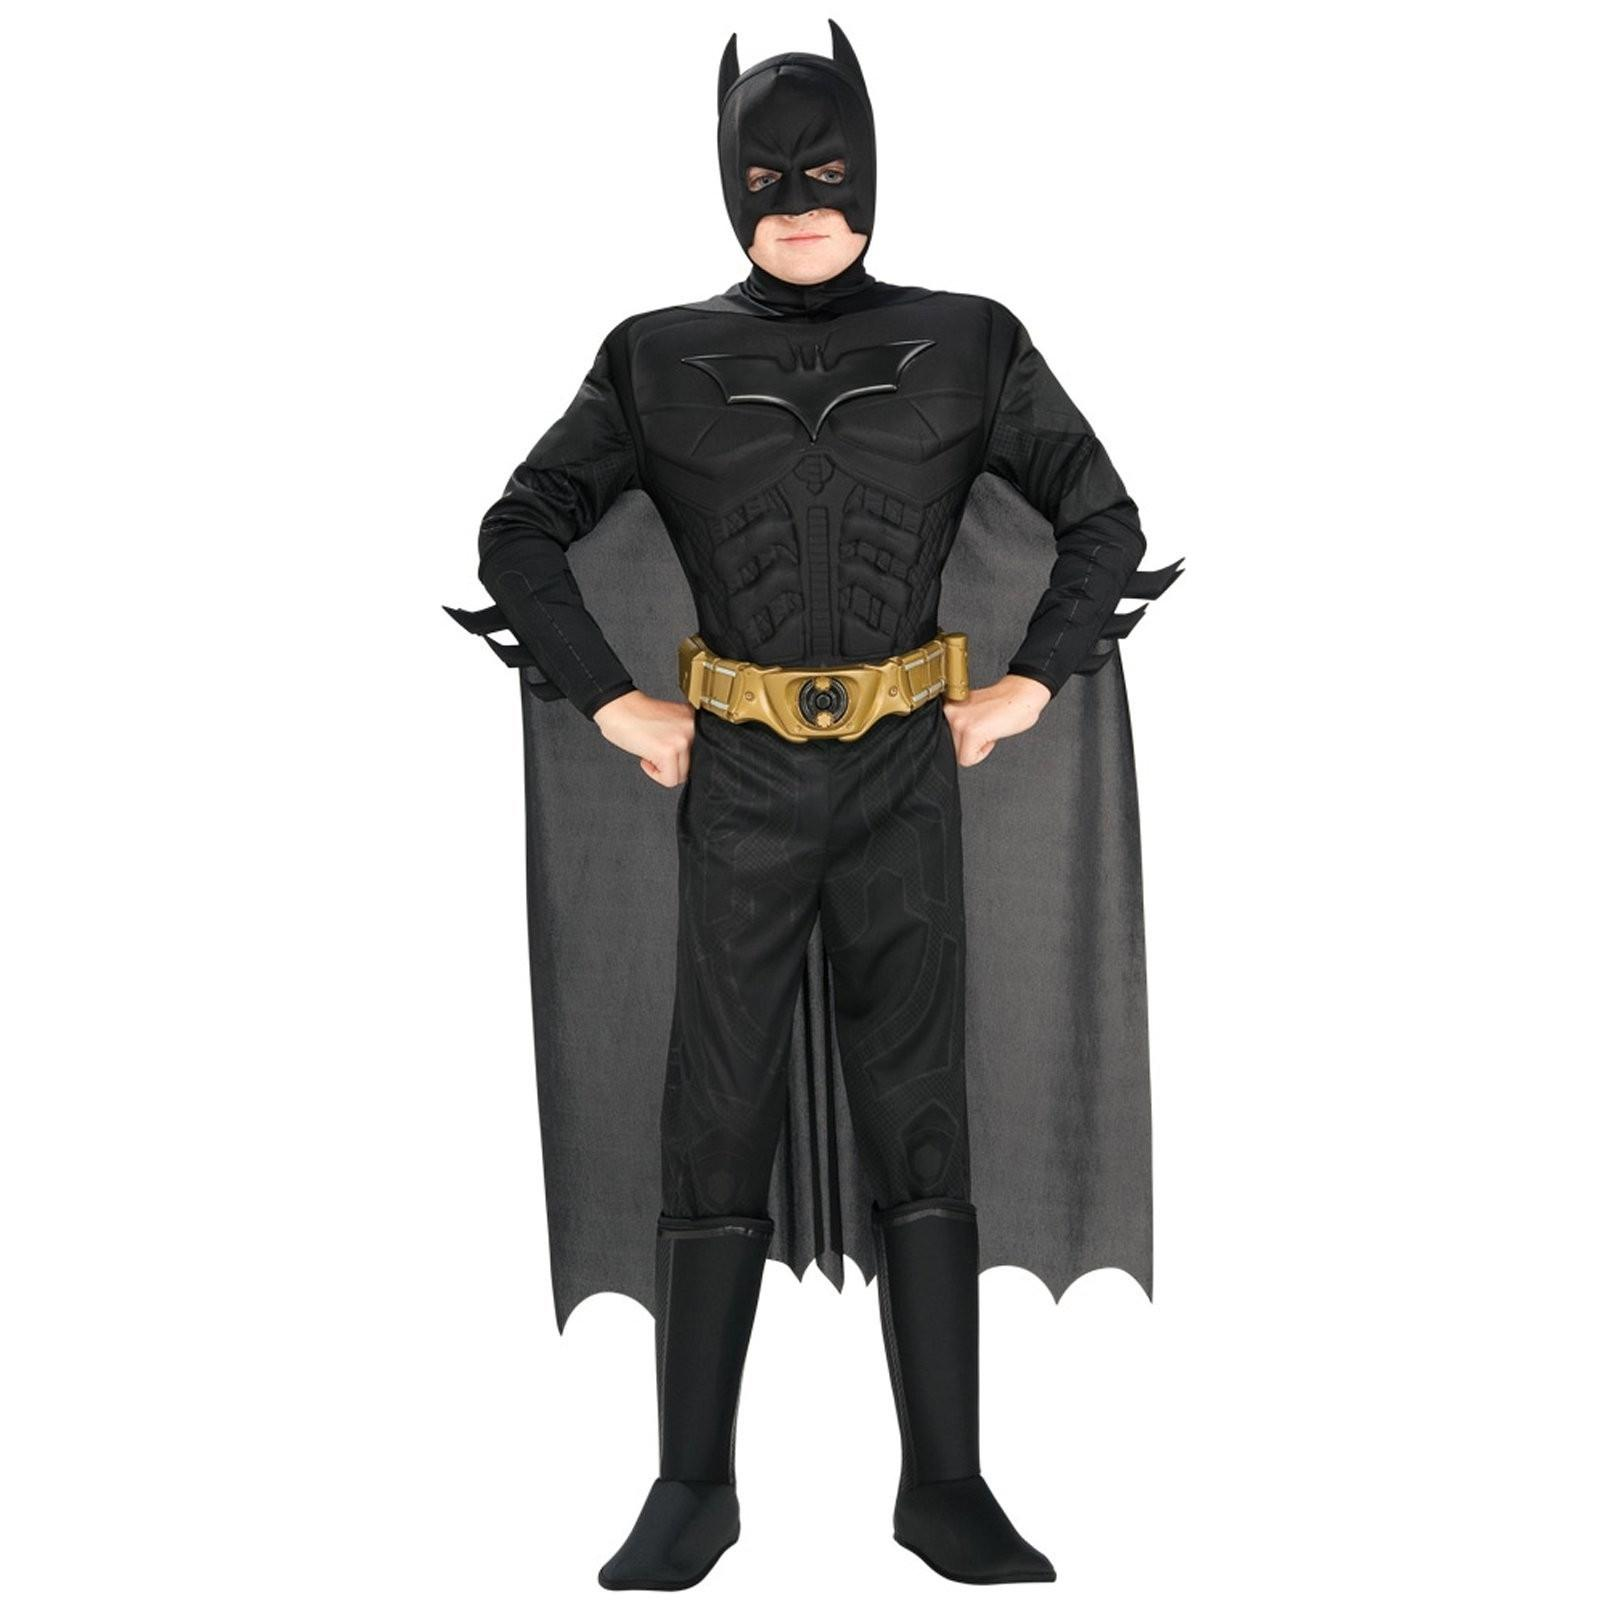 Batman The Dark Knight Kids Muscle Costume, Top 10 Kids Costumes for 2015